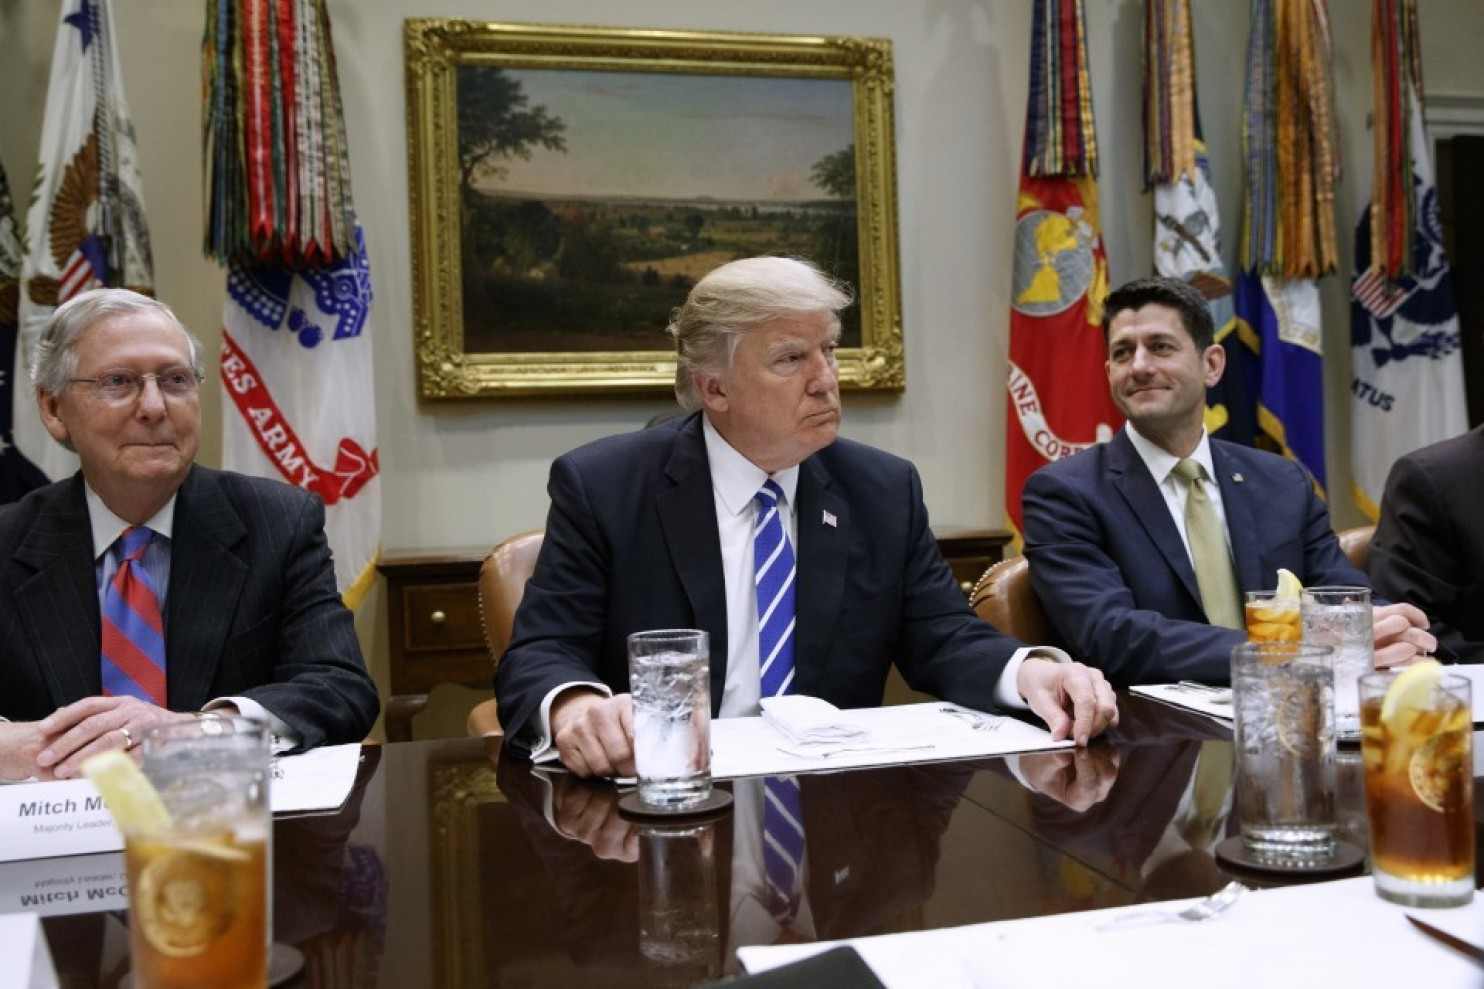 President Trump, flanked by Senate Majority Leader Mitch McConnell and House Speaker Paul D. Ryan, holds a meeting in the White House. (Evavn Vucci/AP)